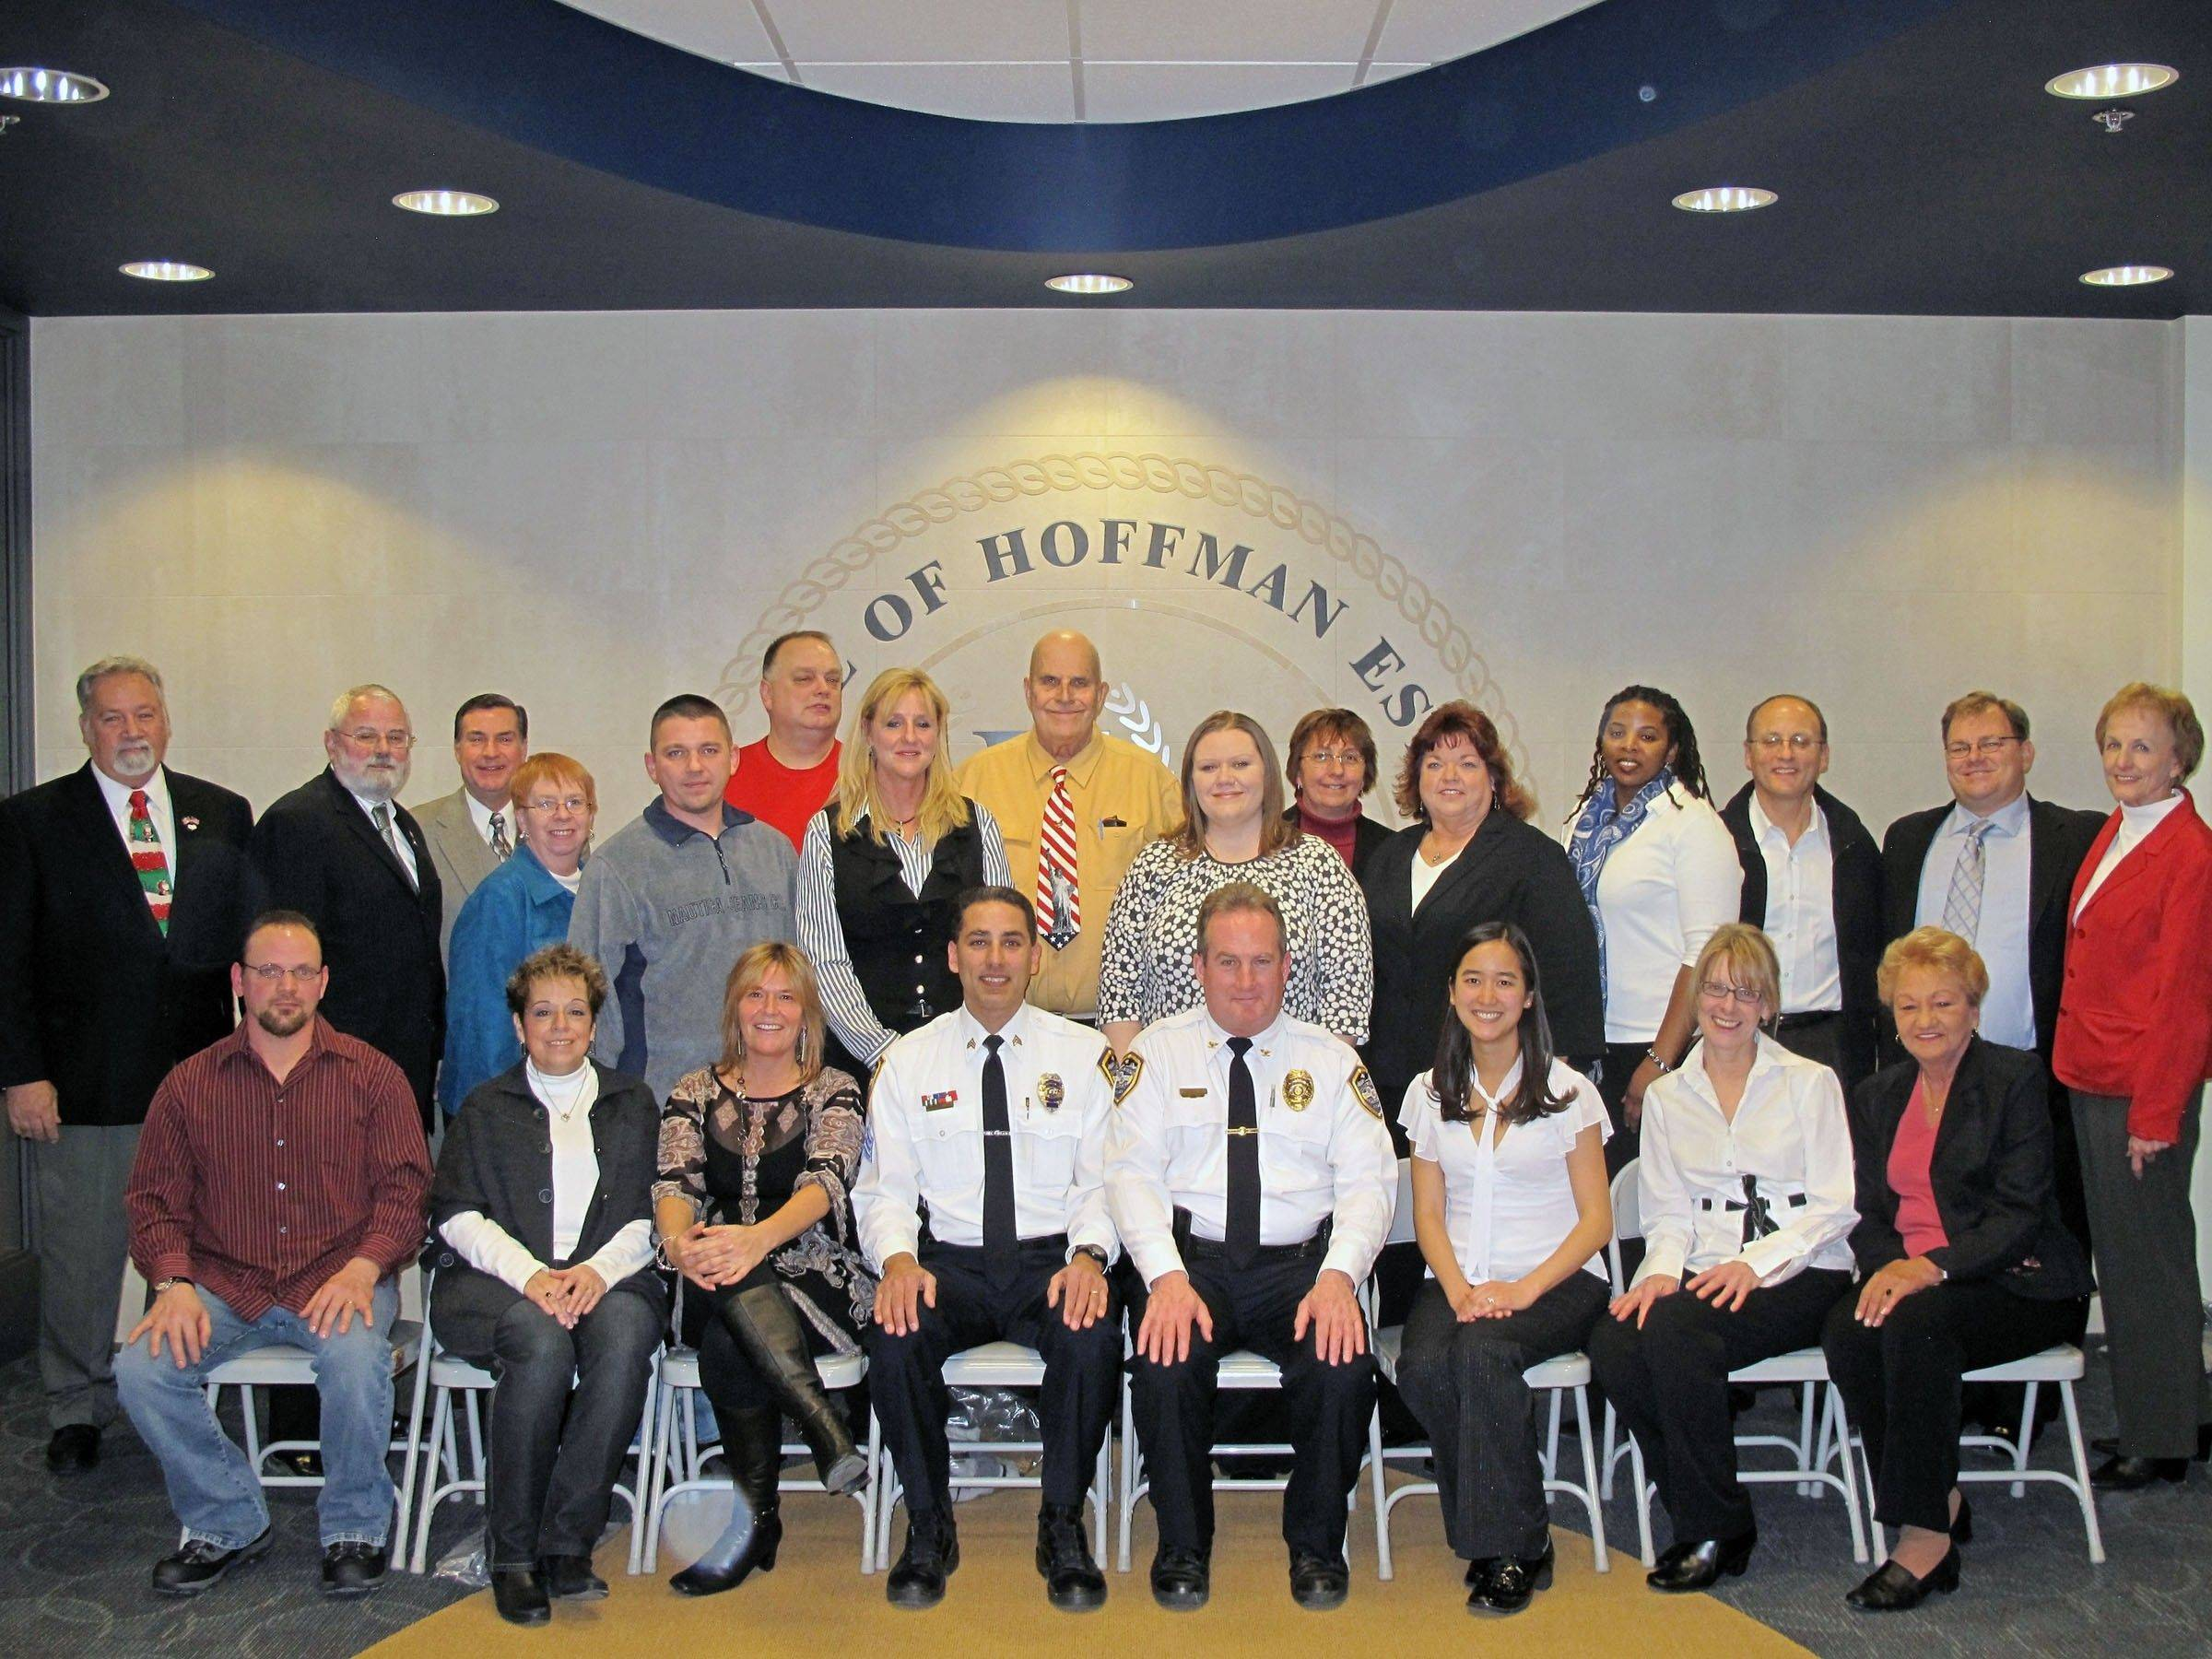 Graduates of last year's Citizen Police Academy gather for a class photo with their instructors and members of the Hoffman Estates village board of trustees.